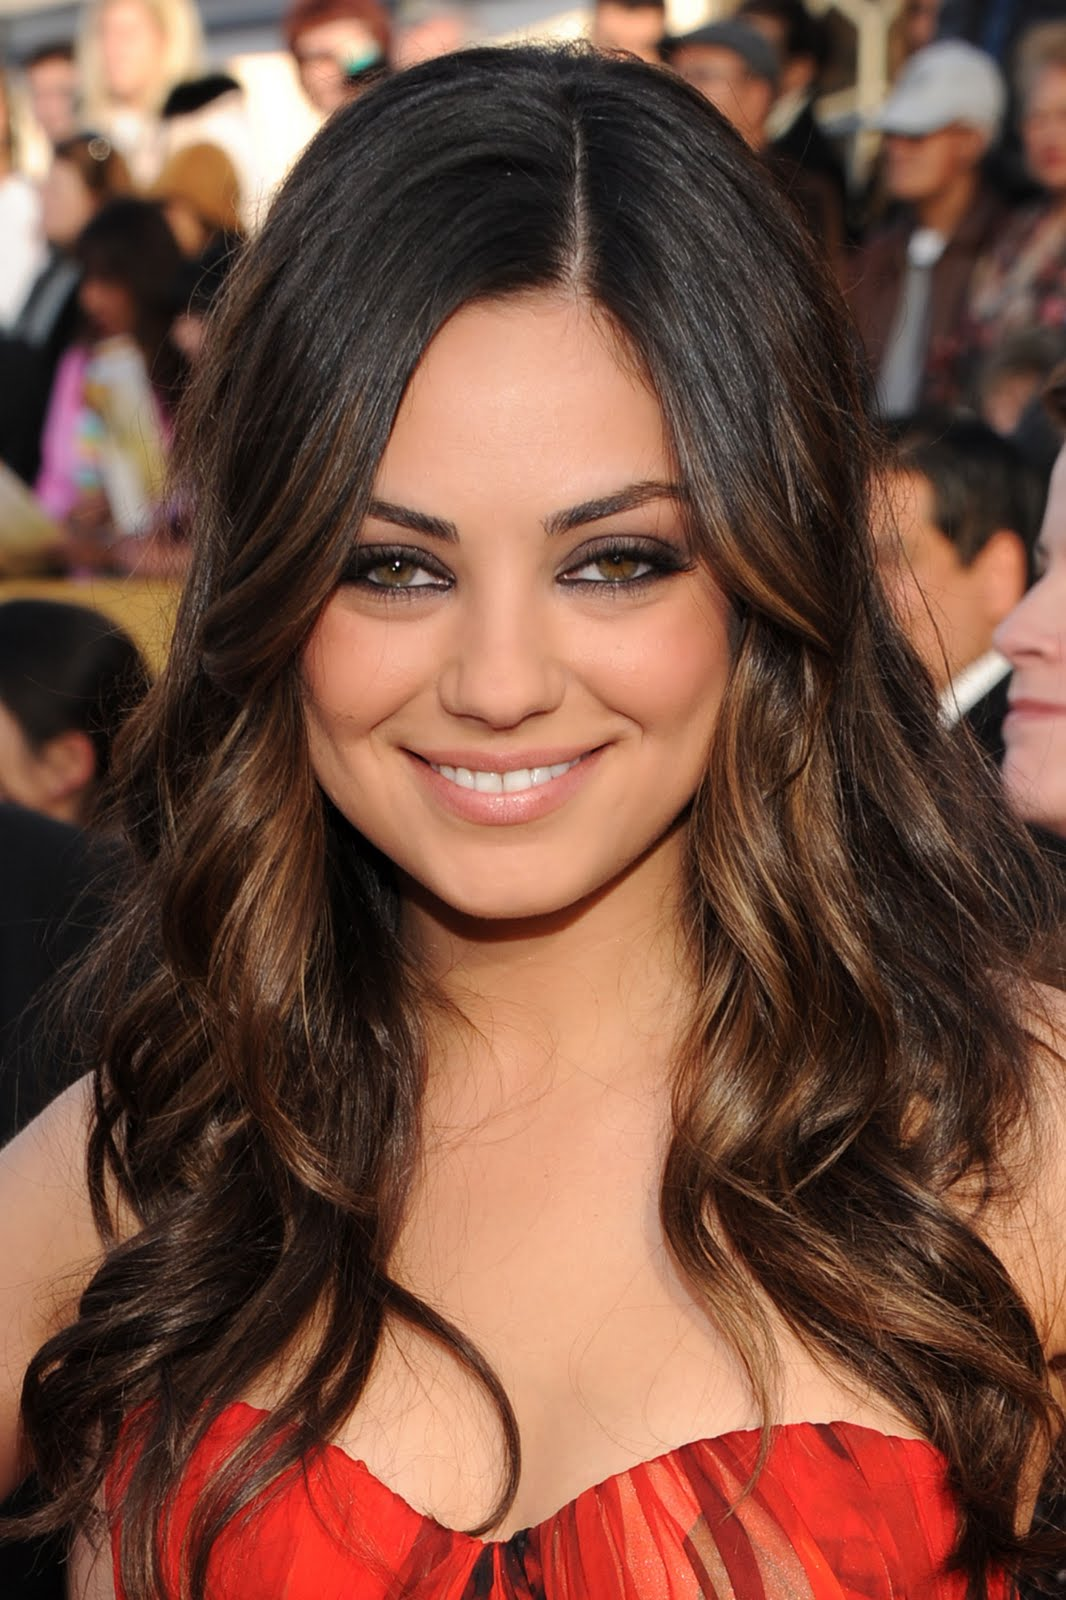 ... saw the gorge Mila Kunis step onto the red carpet at the 17th Annual SAG ...